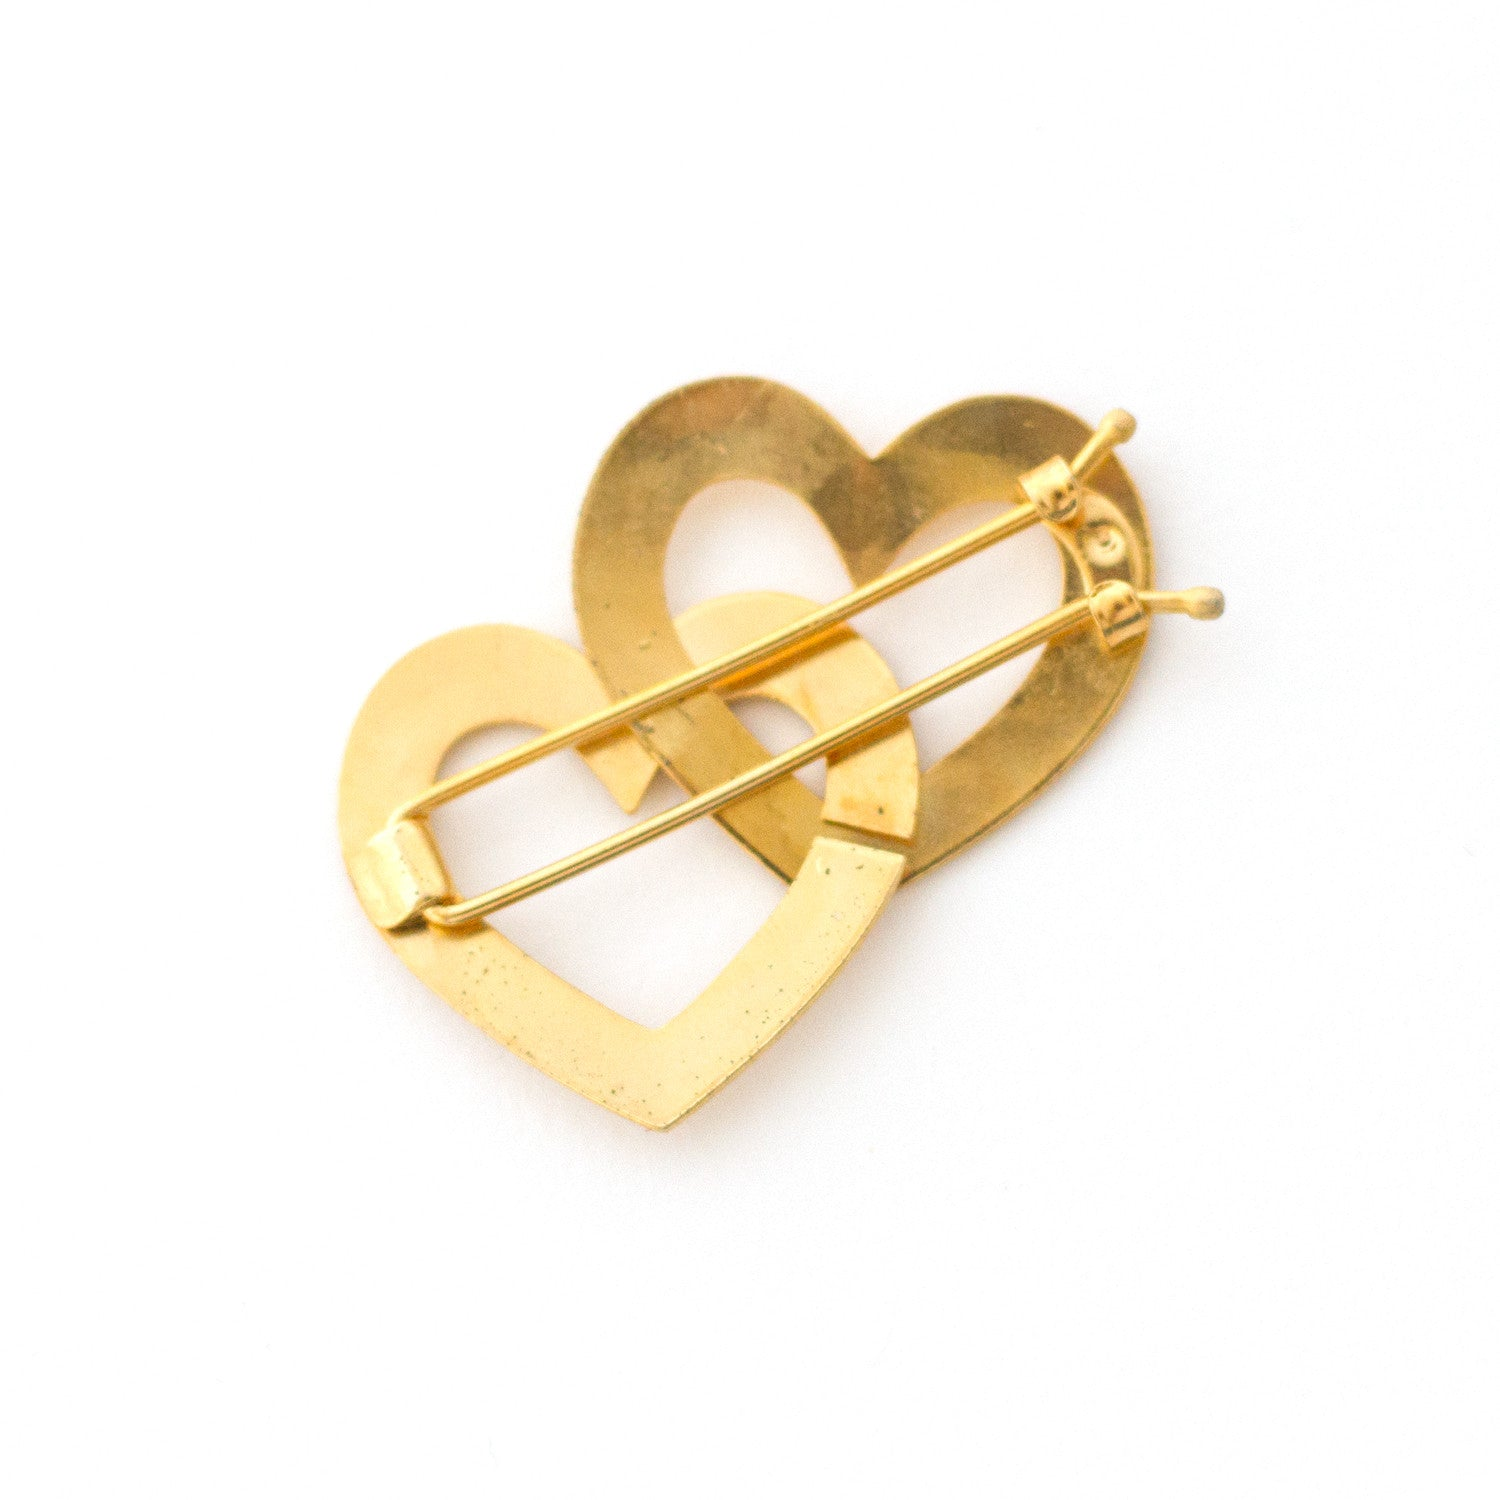 gold heart - vintage - made in france hair clip